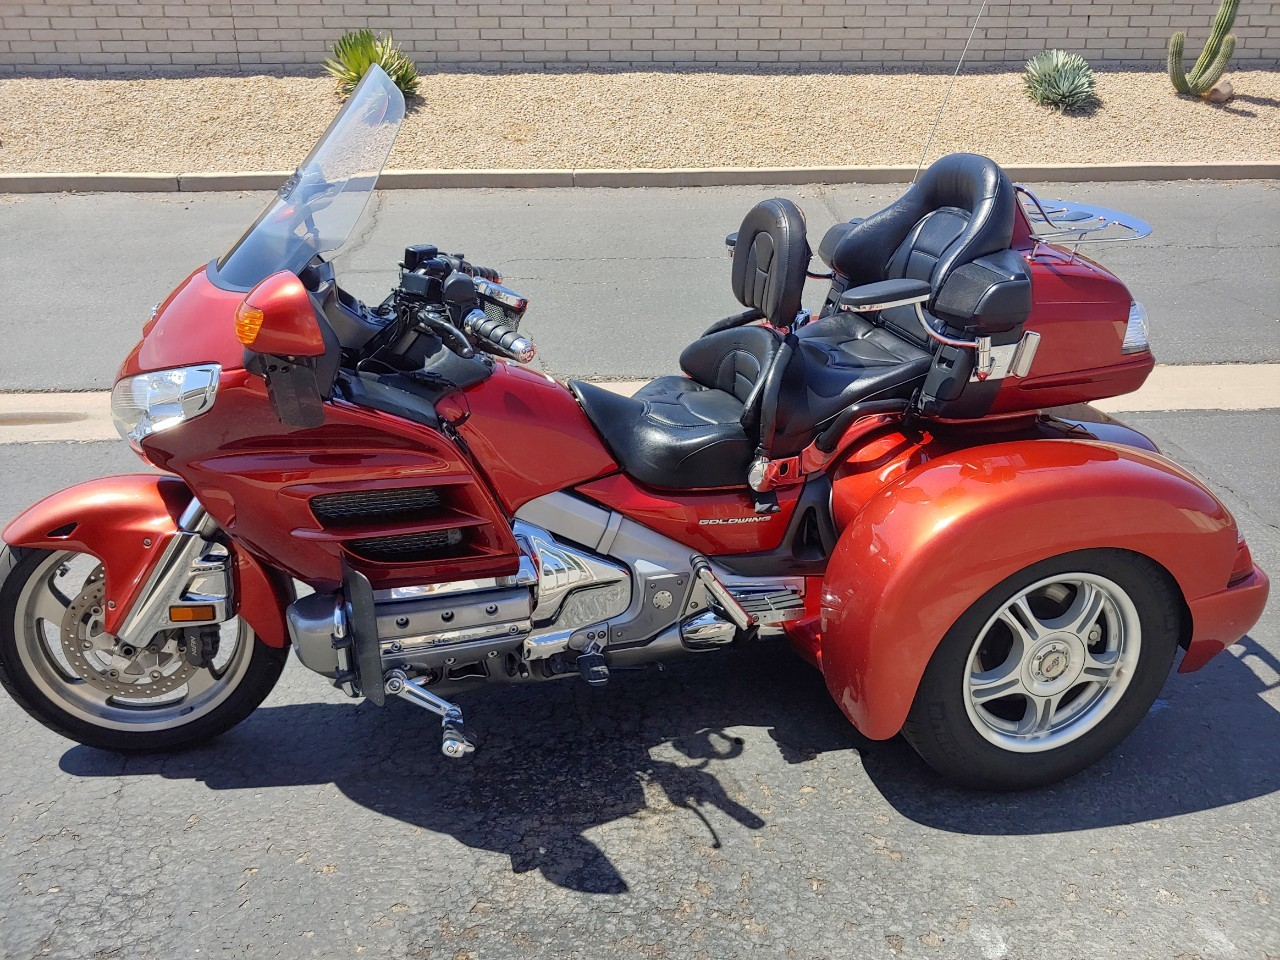 Gold Wing 1800 Trike For Sale - Honda Motorcycle,Trailers